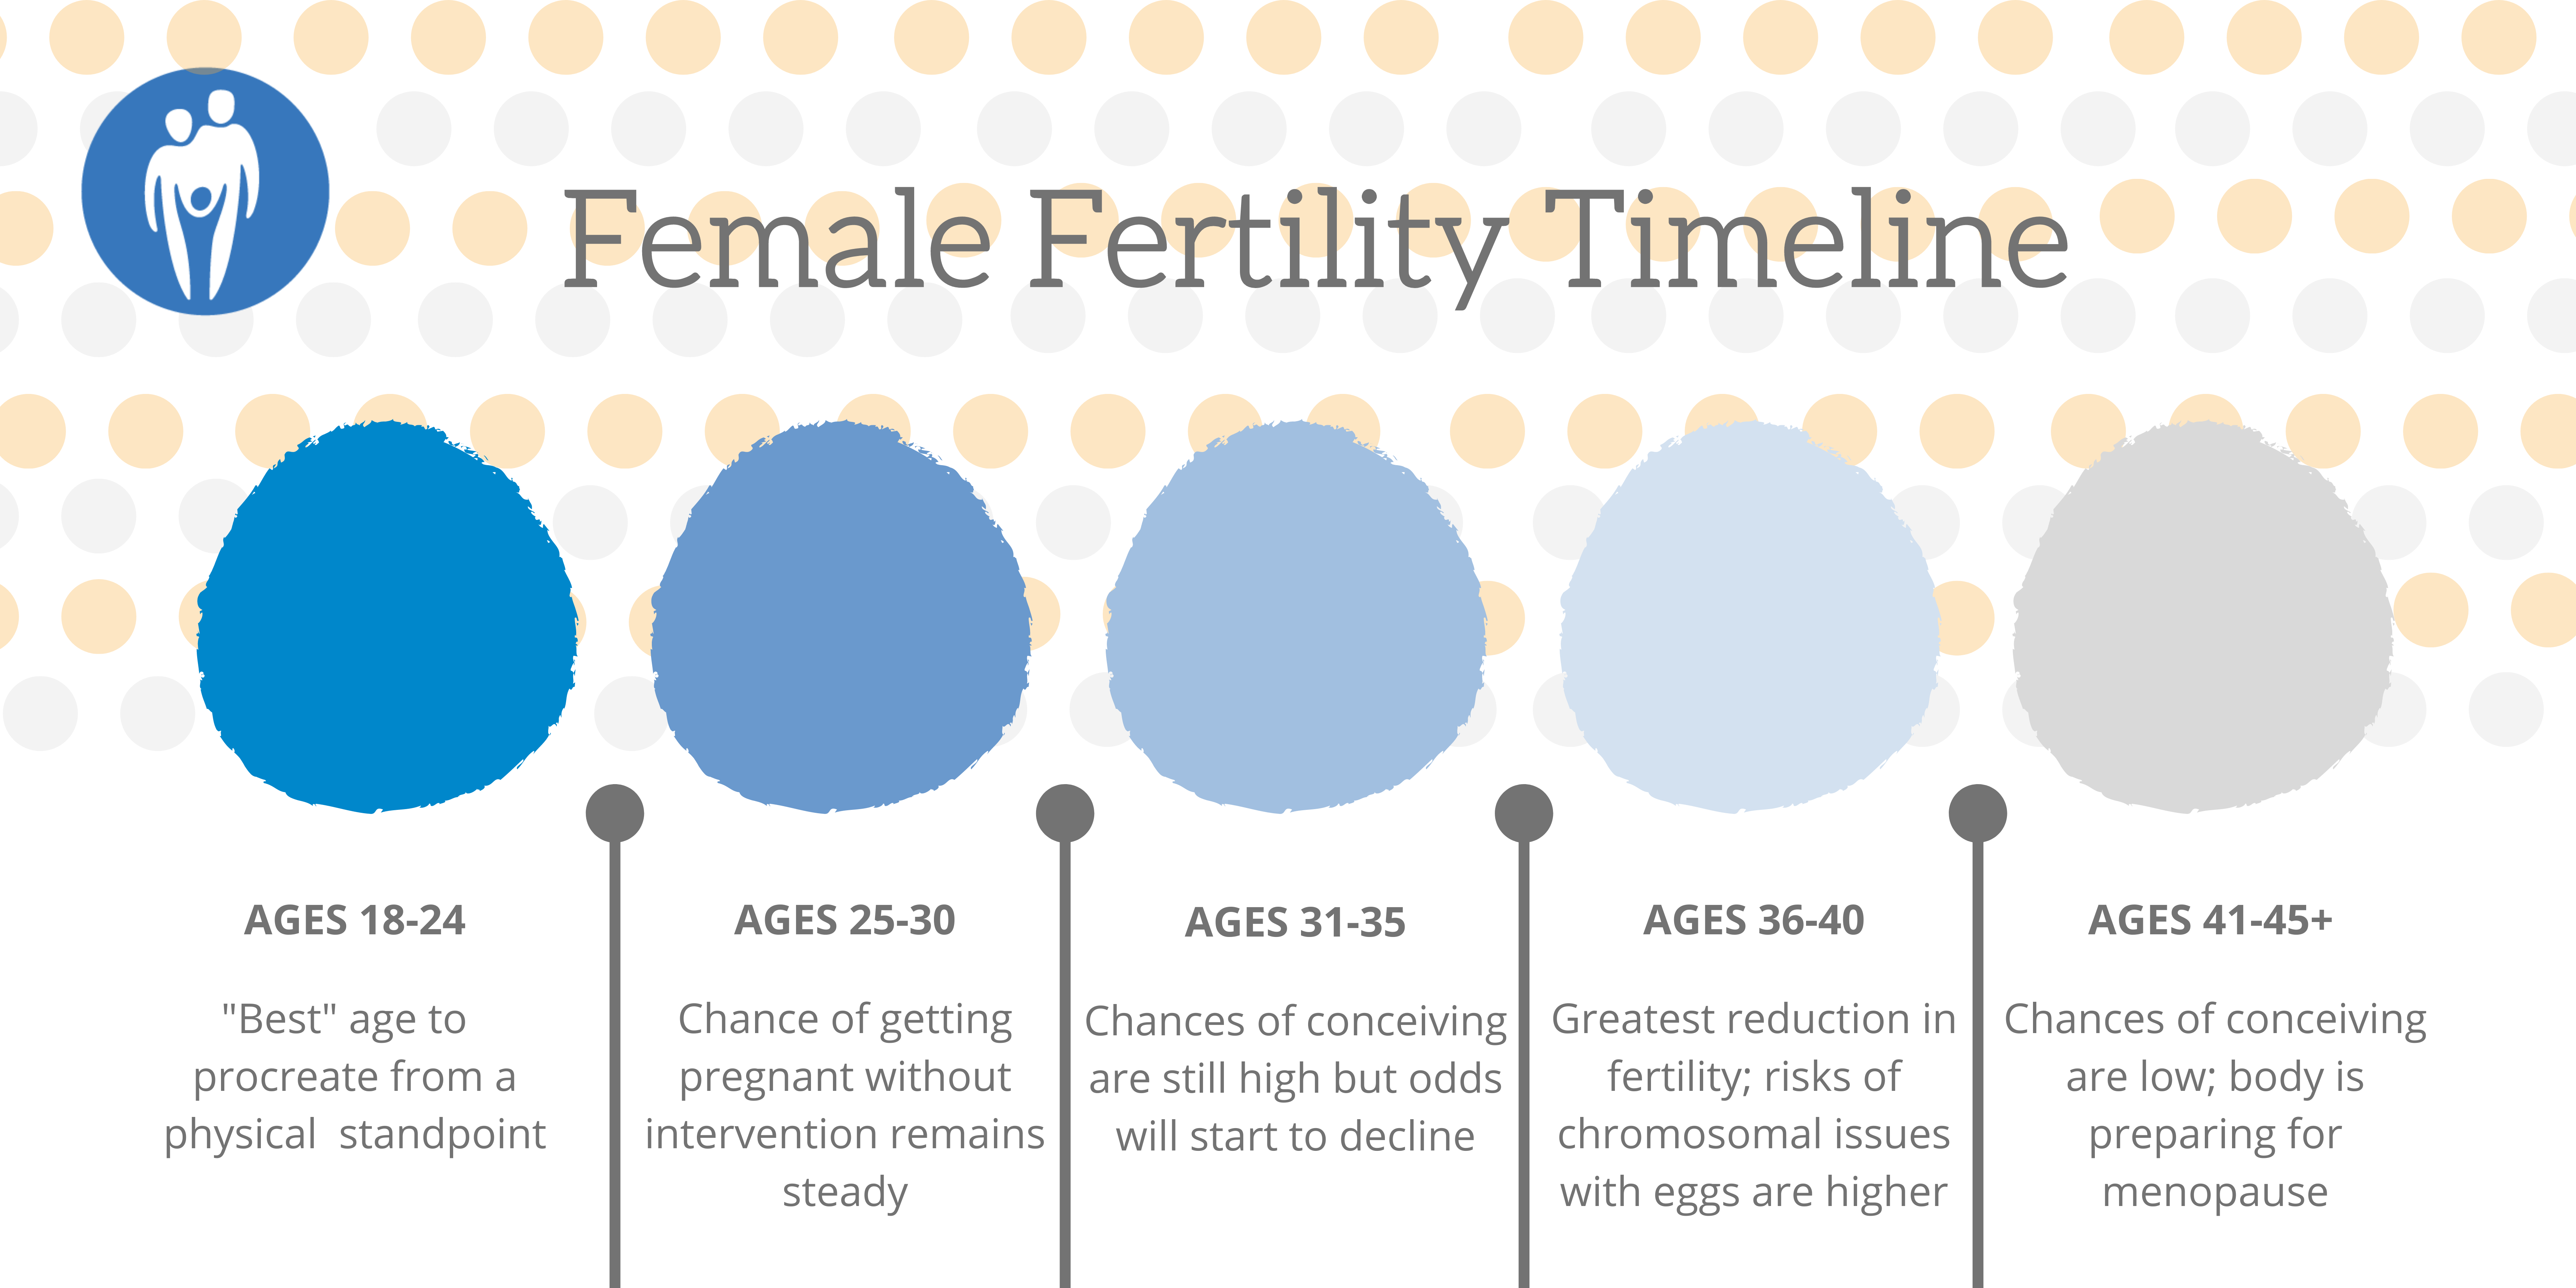 Can my Age affect my Fertility?